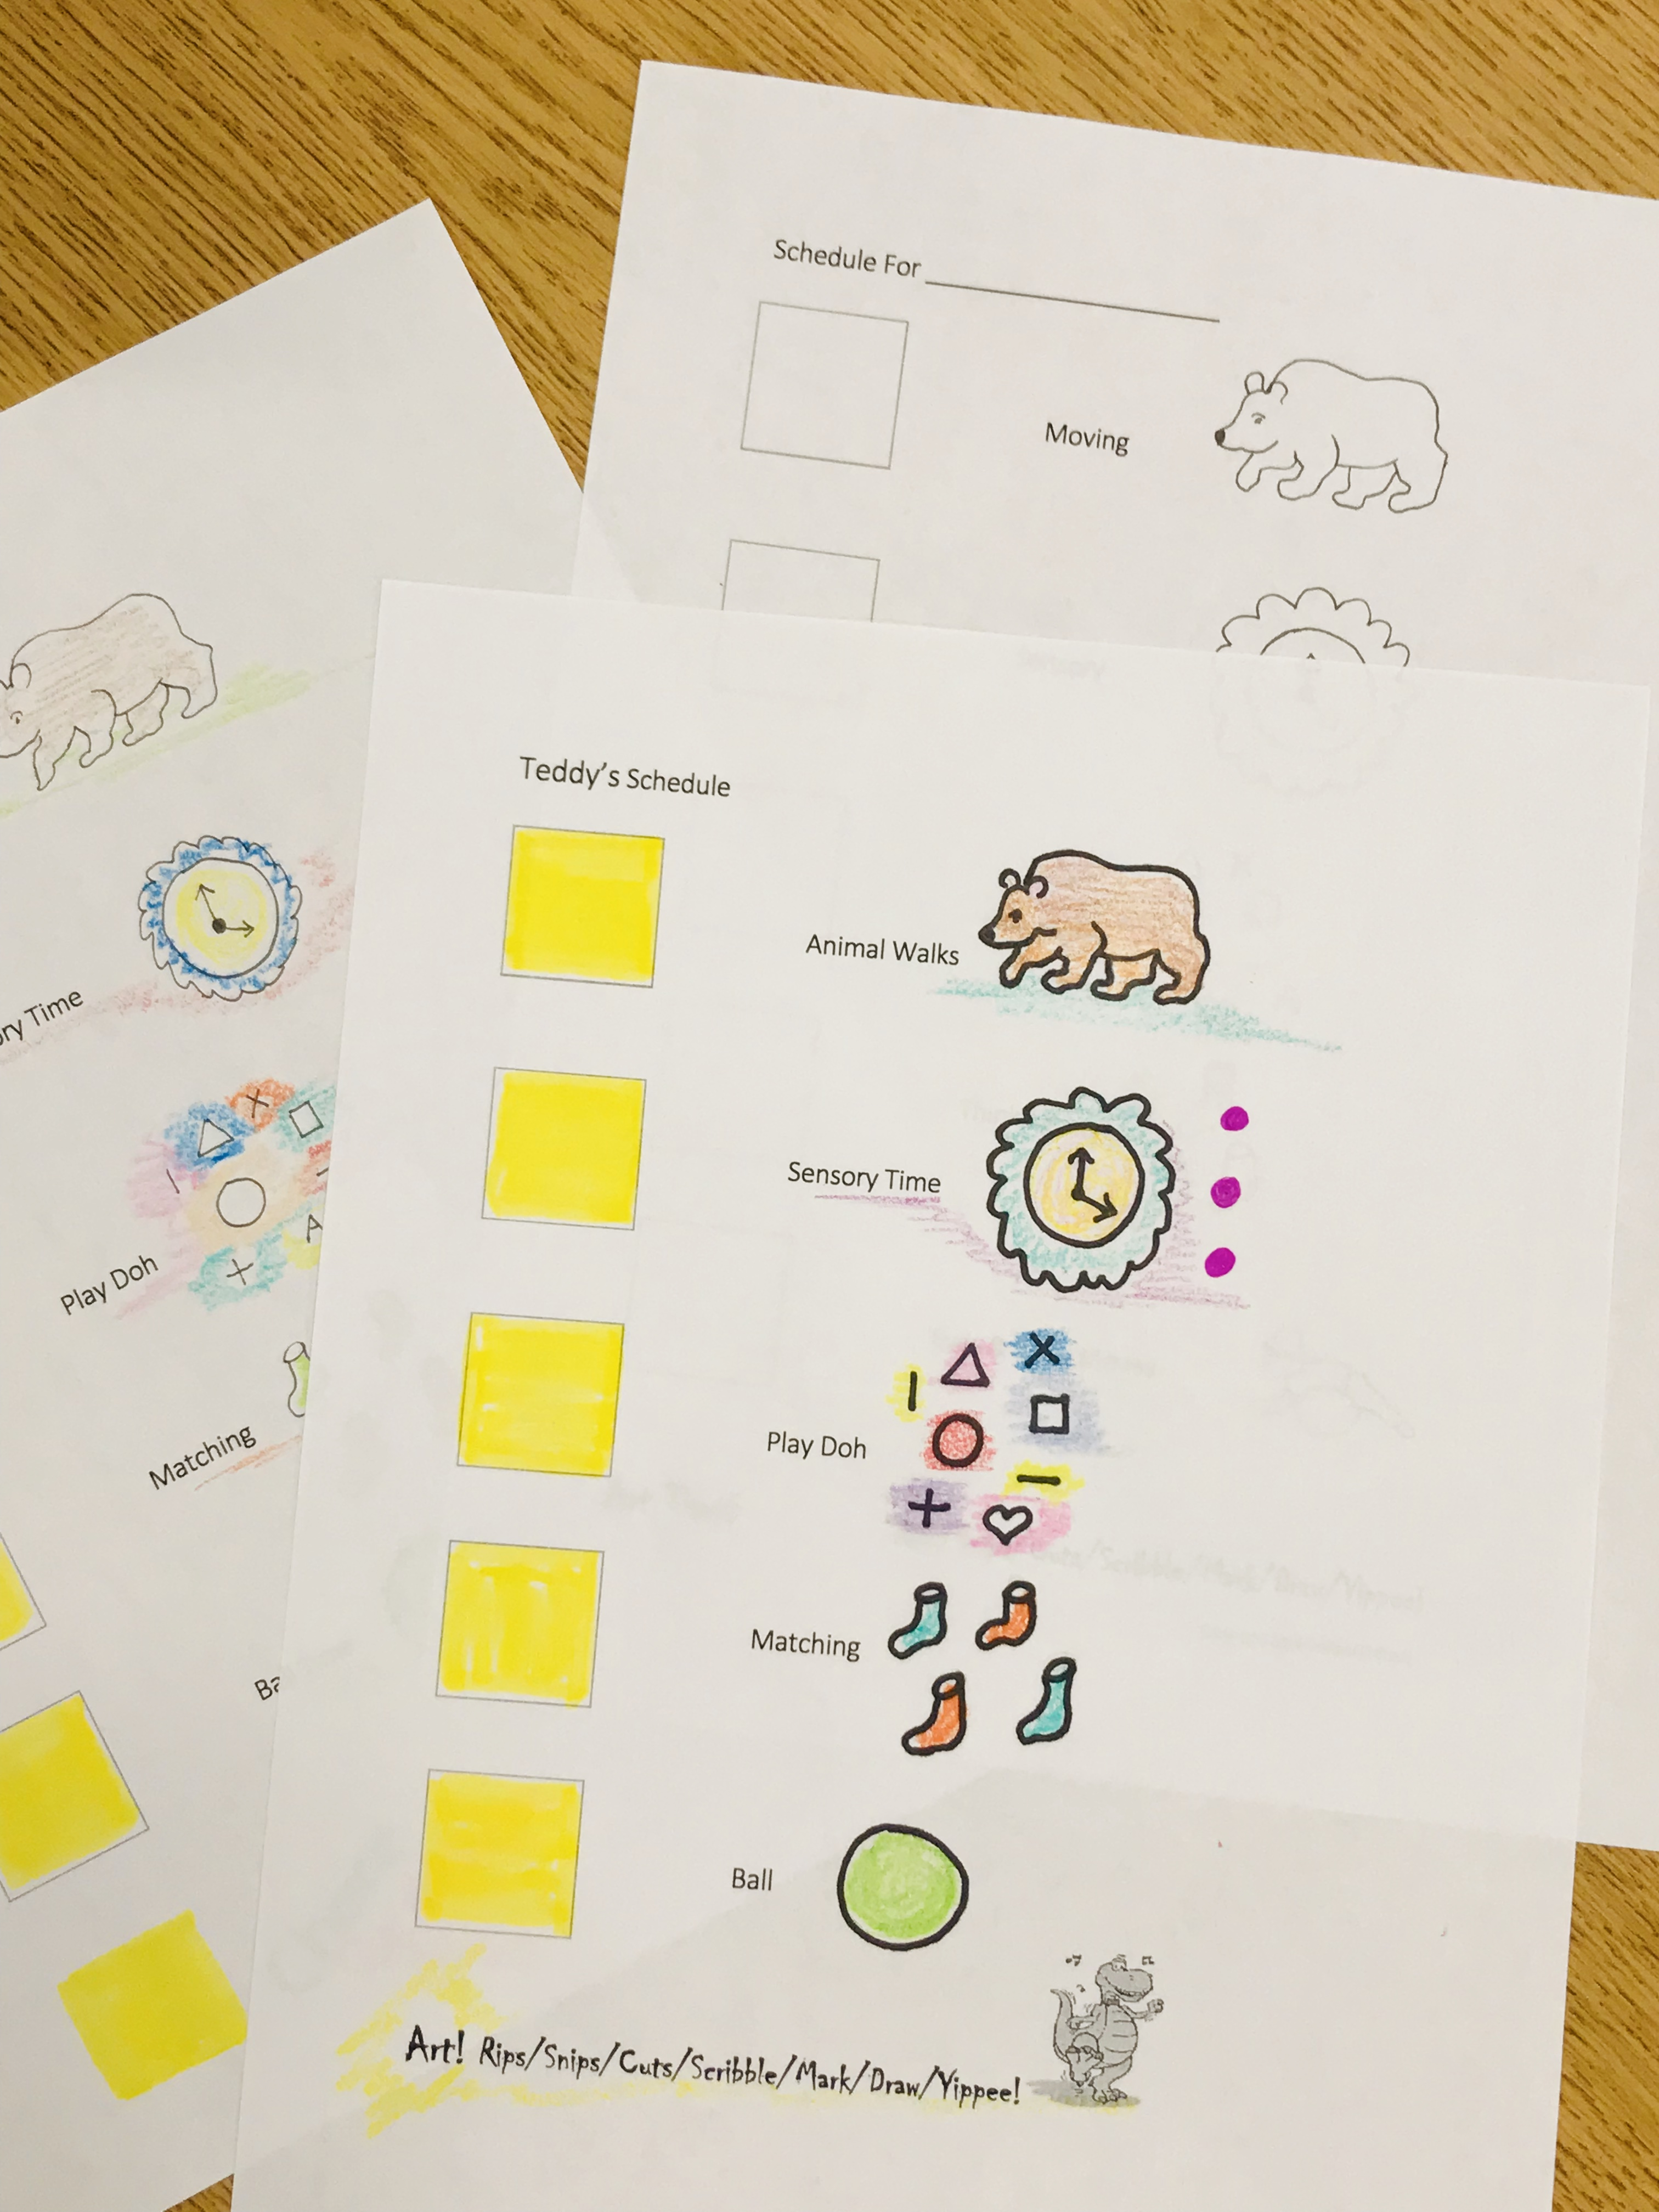 Sheets with different items, animals, and shapes